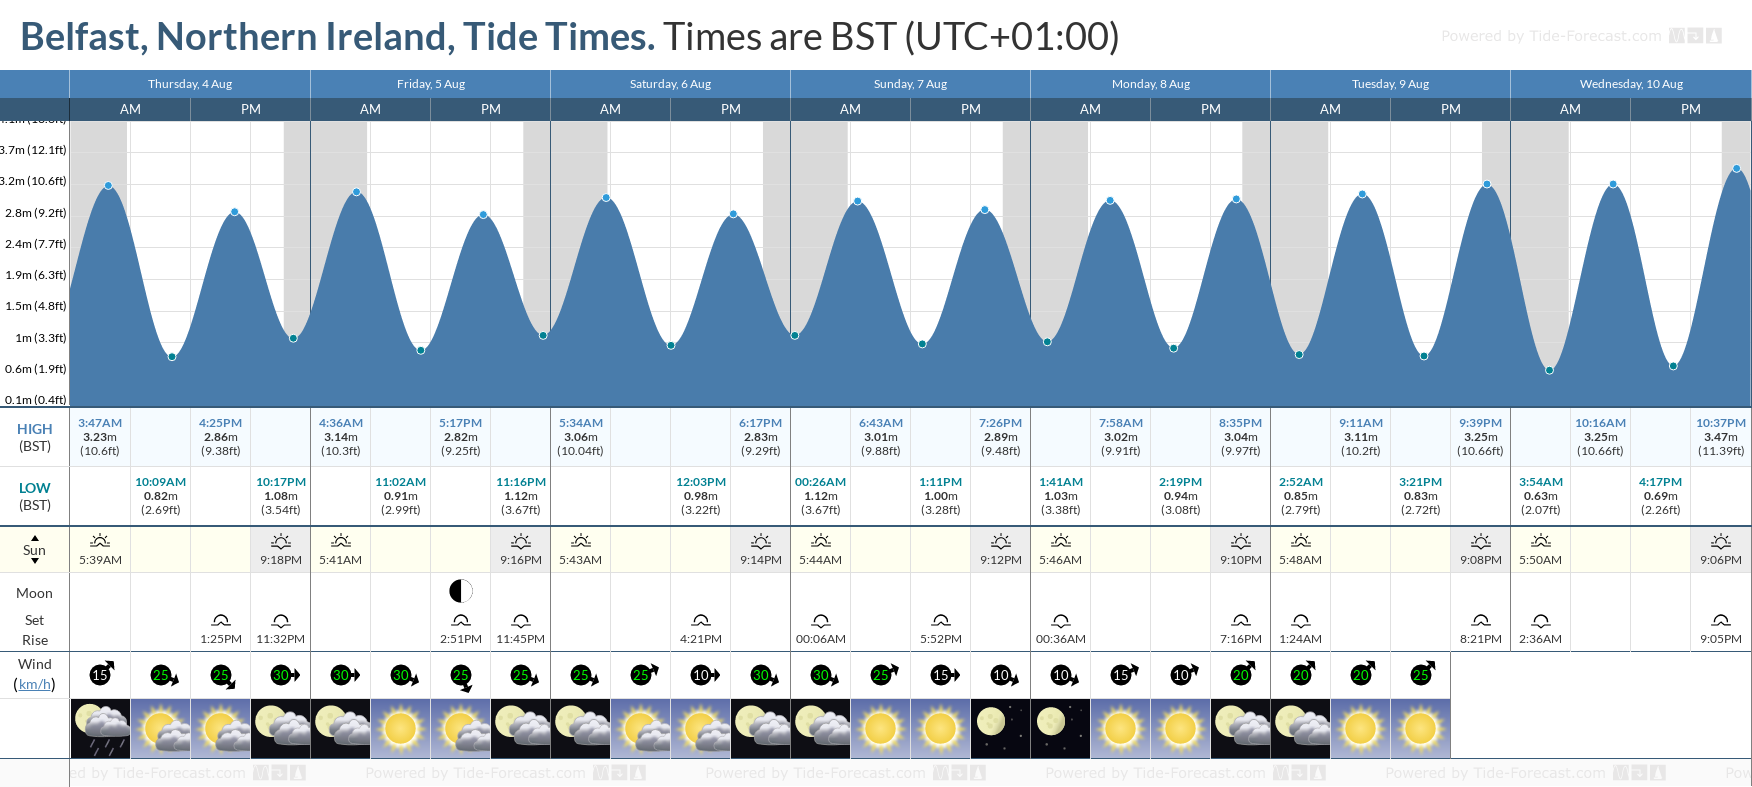 Belfast, Northern Ireland Tide Chart including high and low tide tide times for the next 7 days